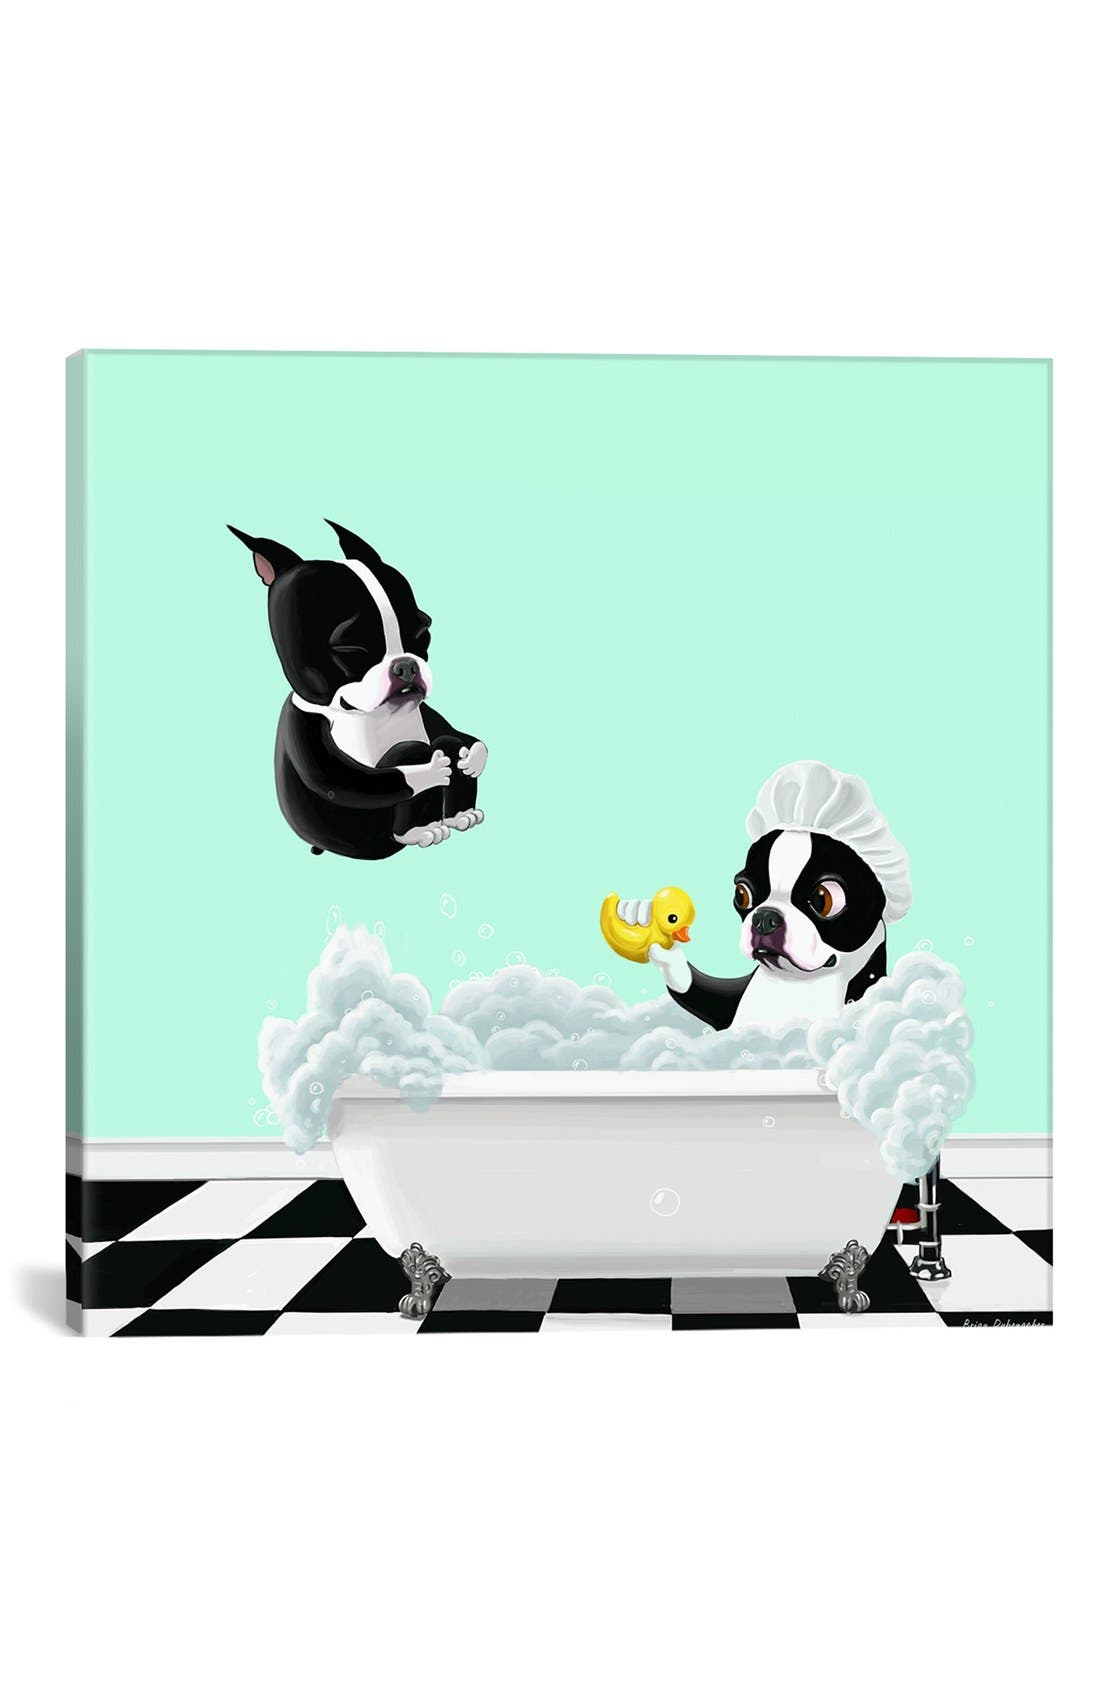 Main Image - iCanvas 'Bath Tub - Brian Rubenacker' Giclée Print Canvas Art